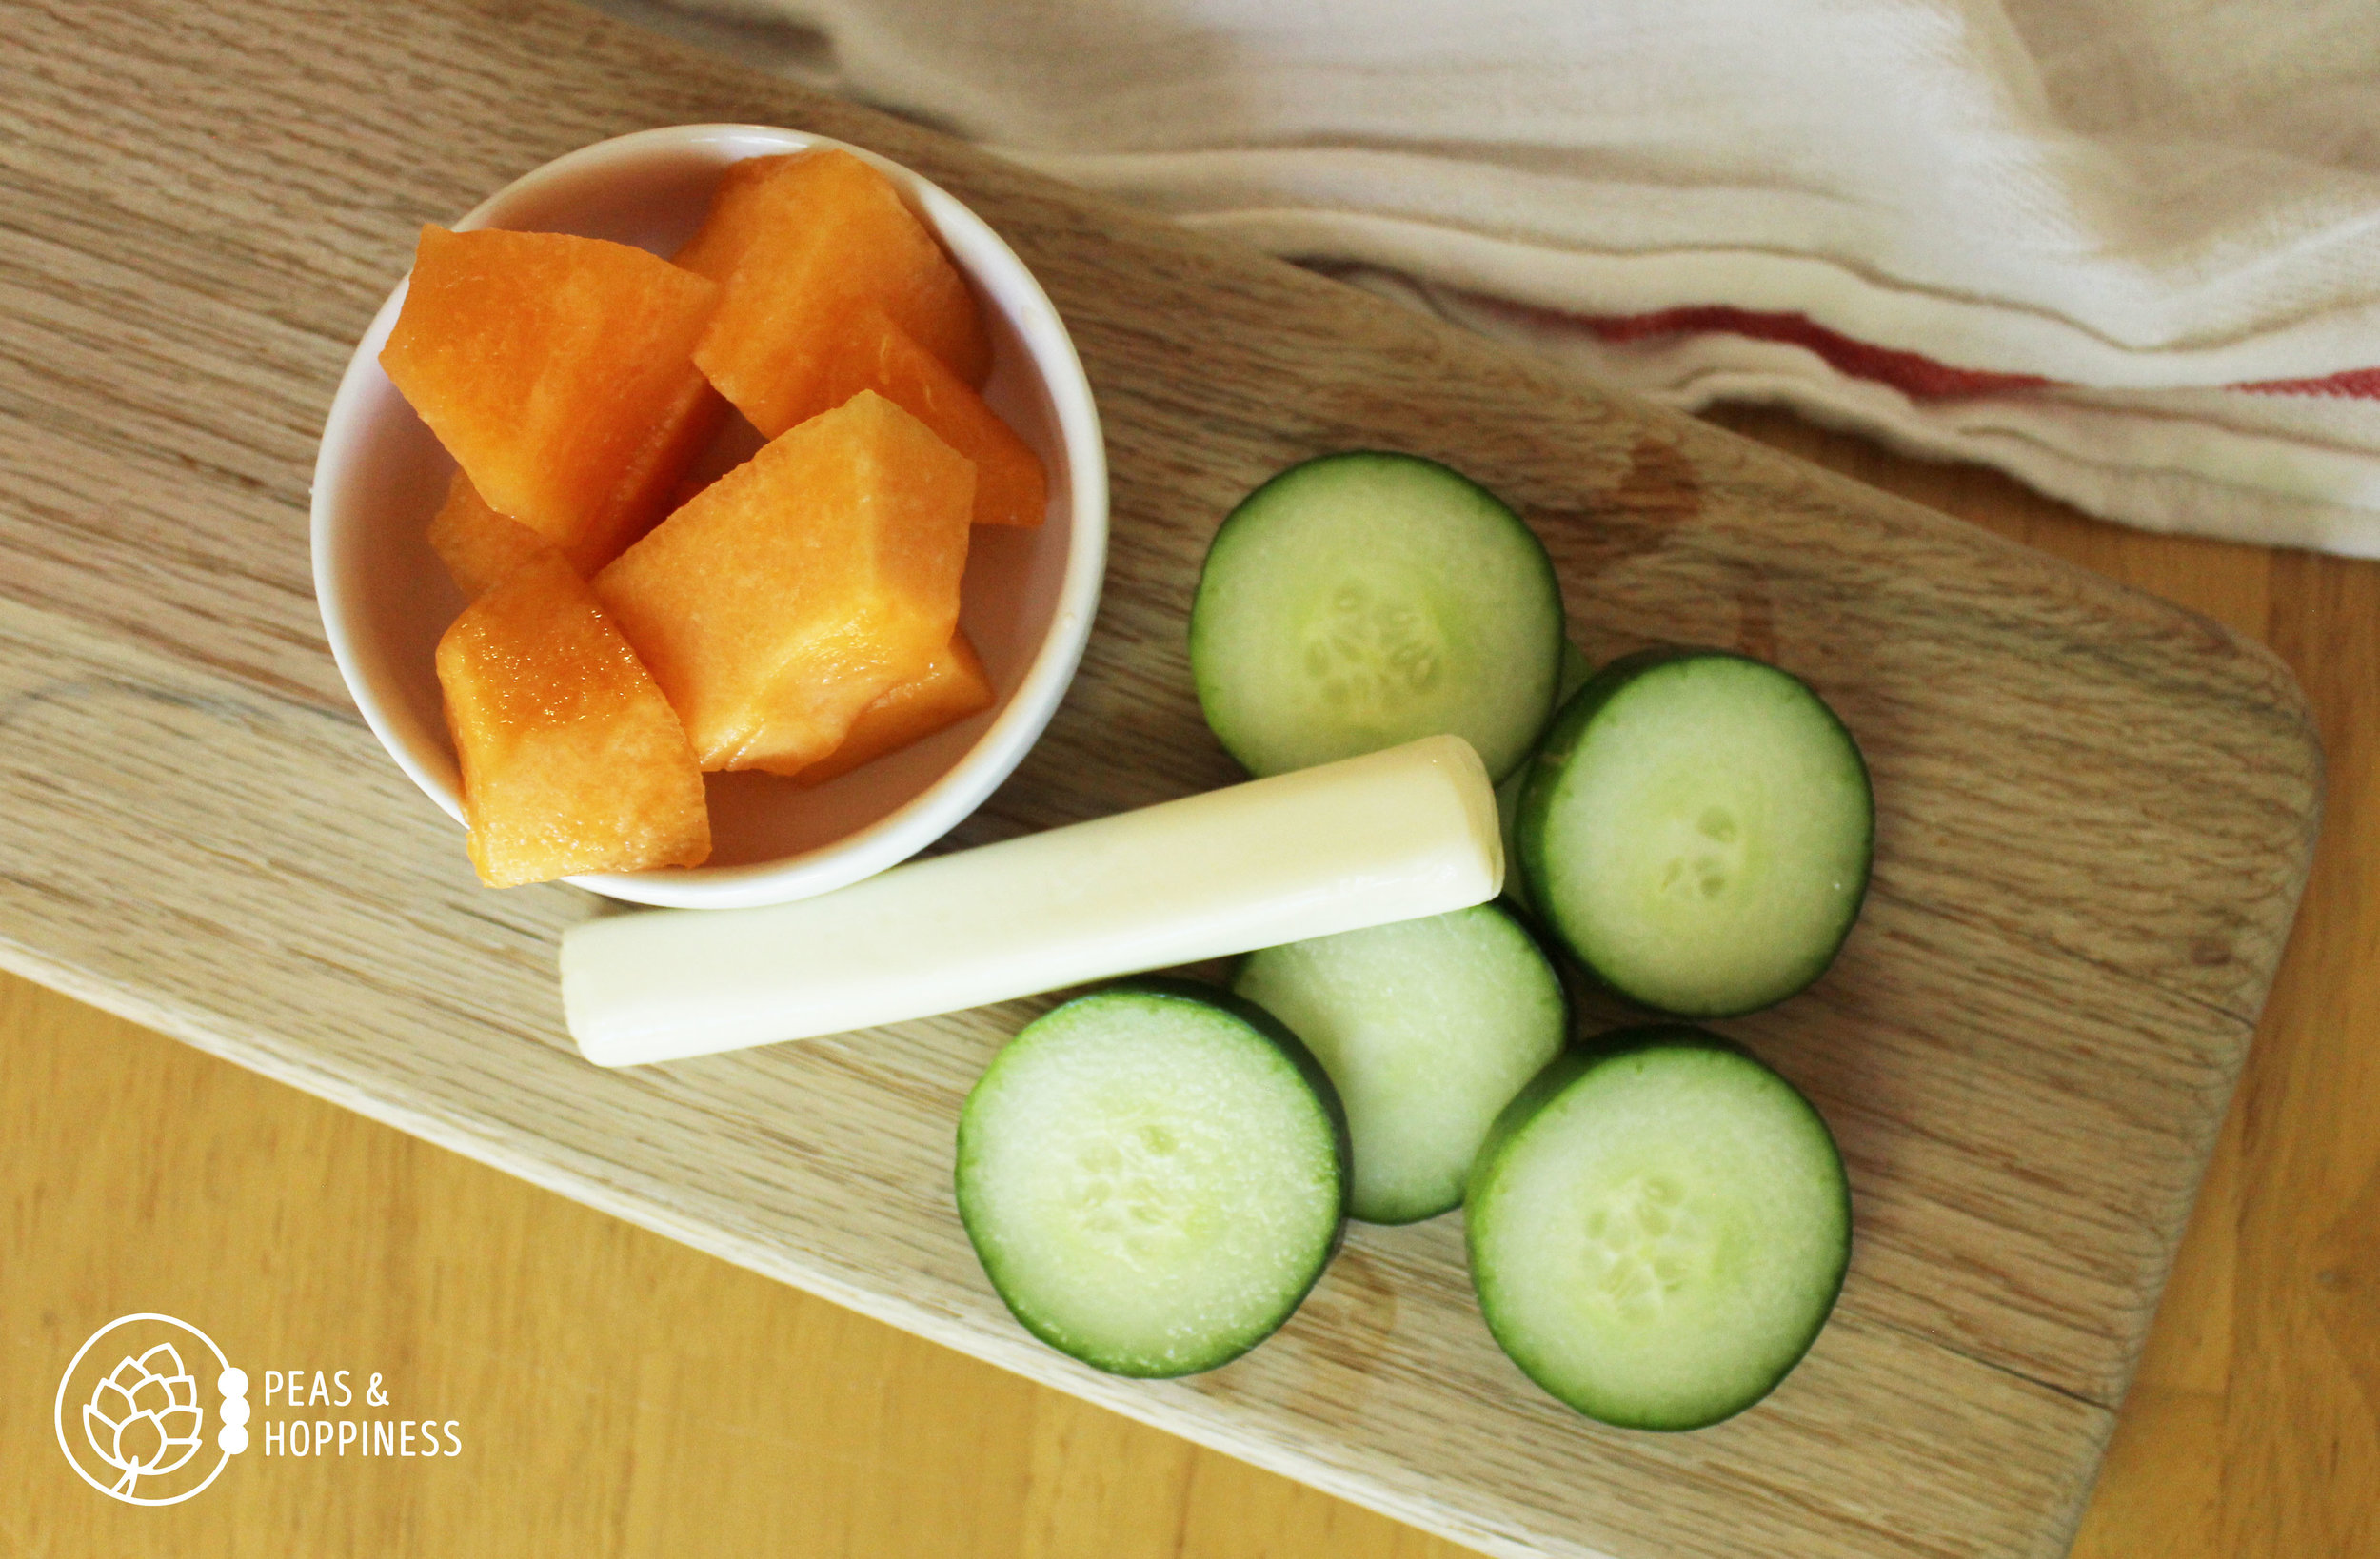 Lunch idea: string cheese + cantaloupe + cucumber slices